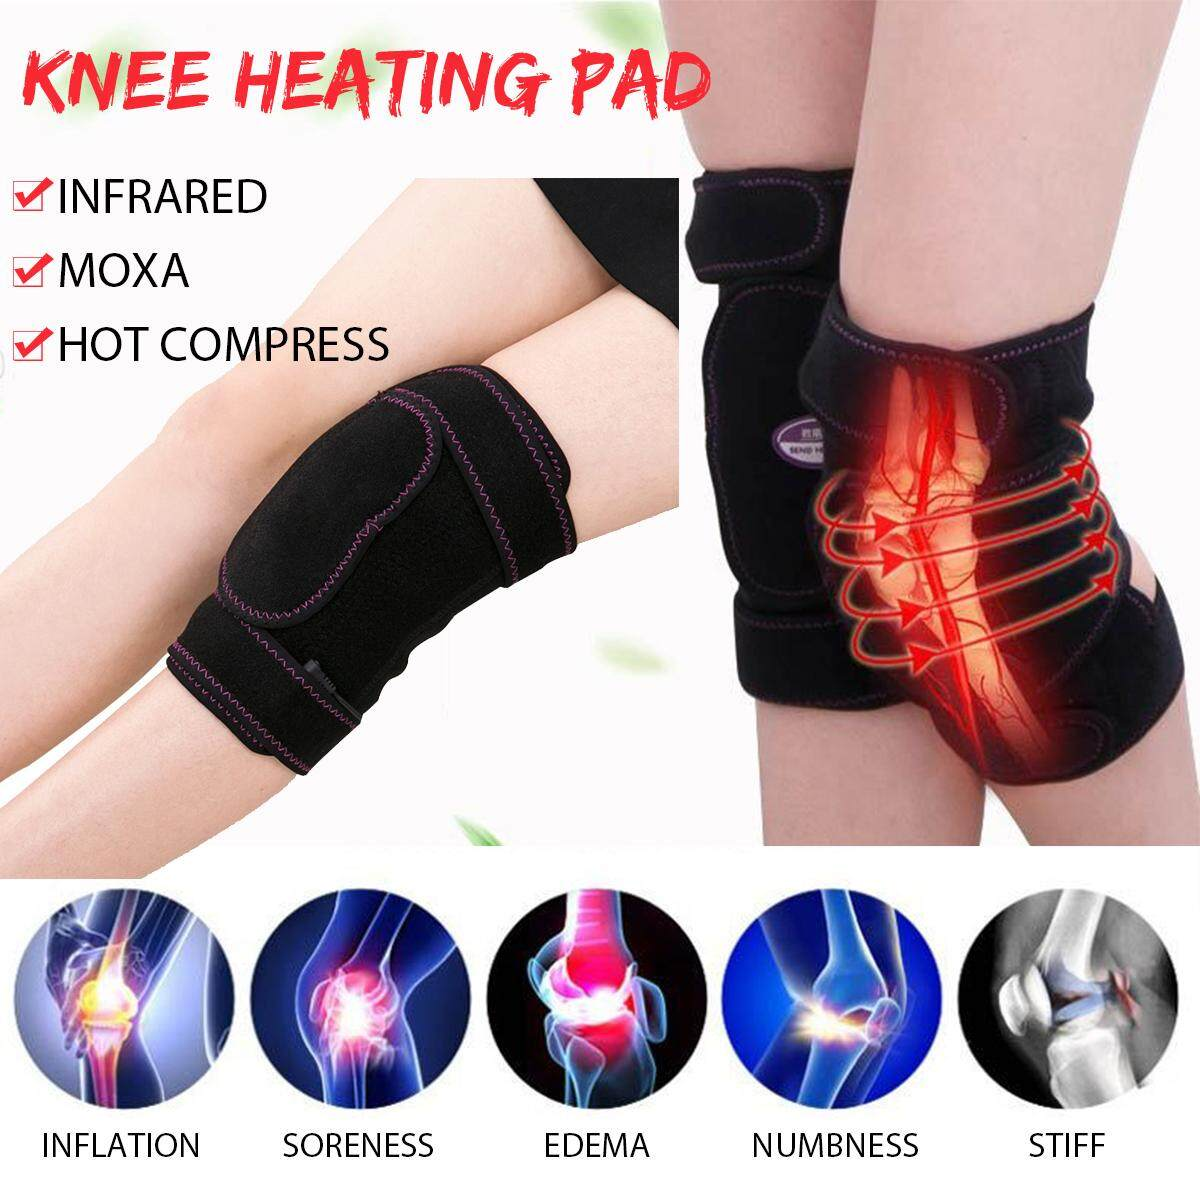 dca038adc9 Knee Heating Pad Thermal Heated Therapy Wrap Support Brace Arthritis Pain  Relief